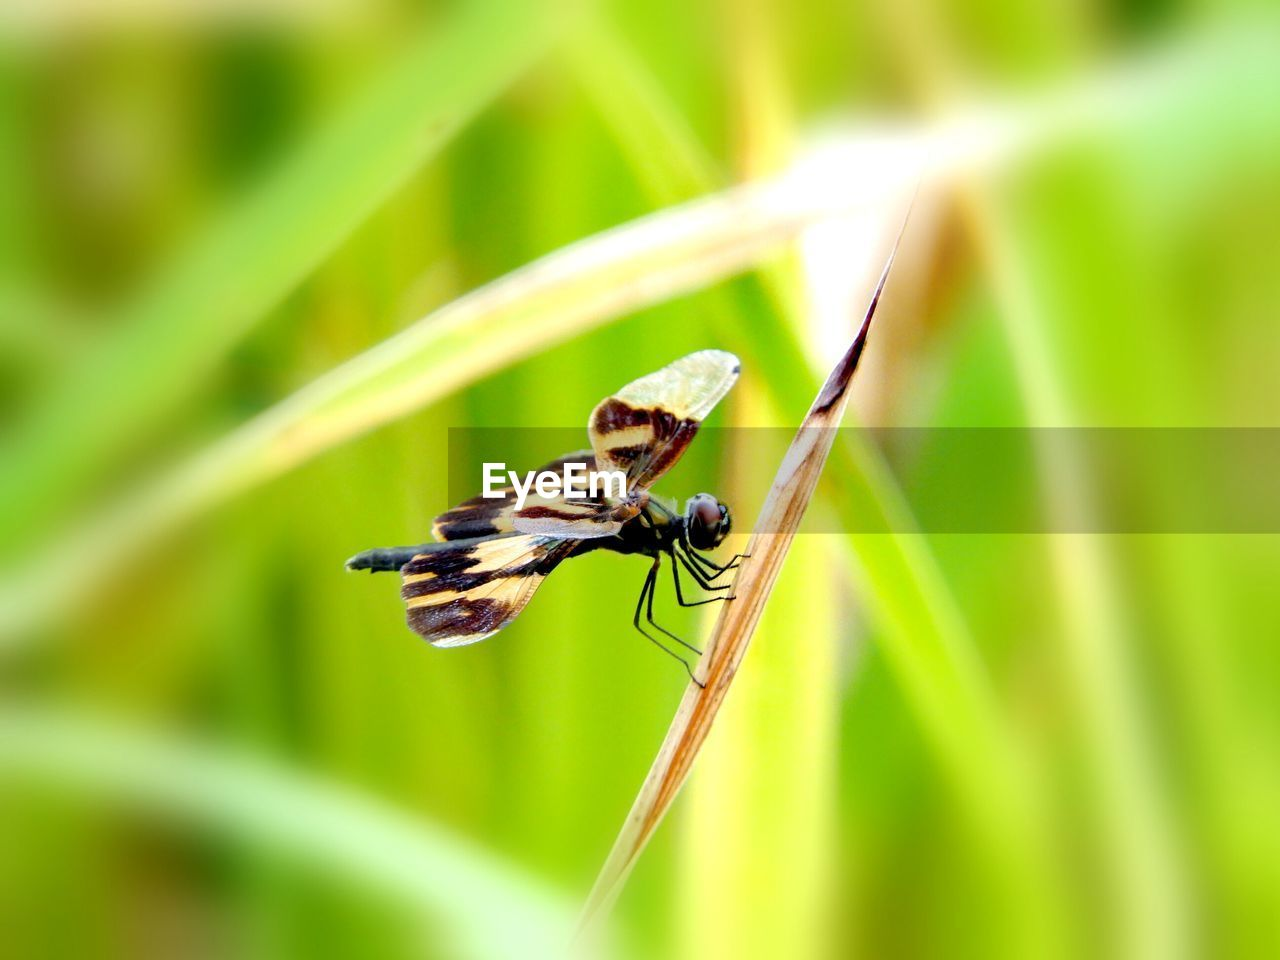 animal themes, insect, animals in the wild, one animal, green color, animal wildlife, nature, day, close-up, no people, plant, leaf, outdoors, growth, grass